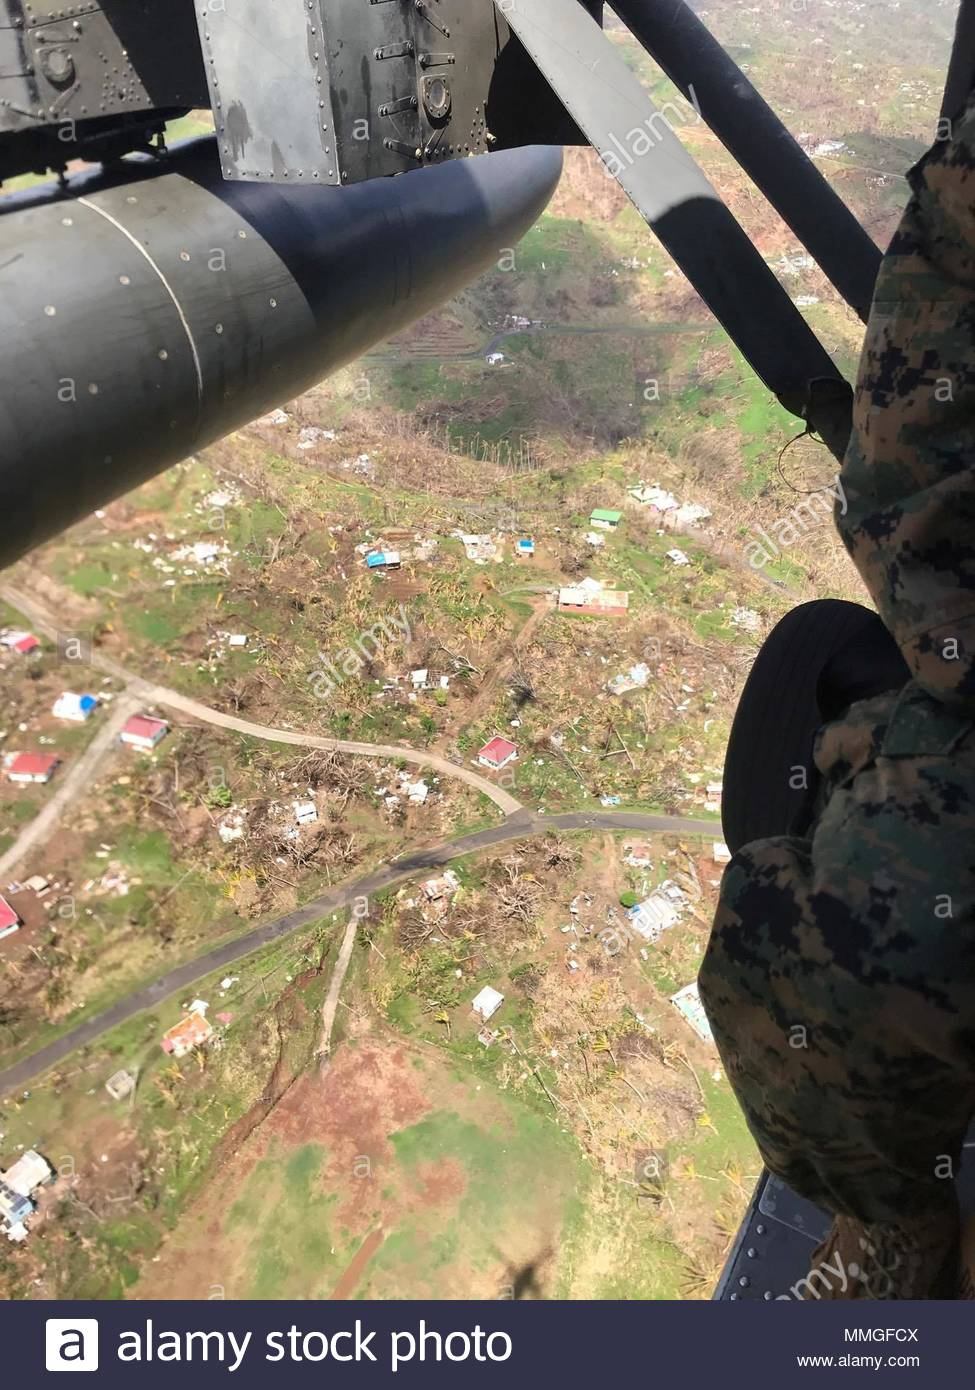 U.S. service members fly over the Caribbean island of Dominica, Oct. 9, 2017. The island was devastated by Hurricane Maria, a Category 5 storm that made landfall Sept. 19, 2017, spurring support from the Joint Base Lewis-McChord community, as well as military installations across the globe. (Courtesy Photo) - Stock Image